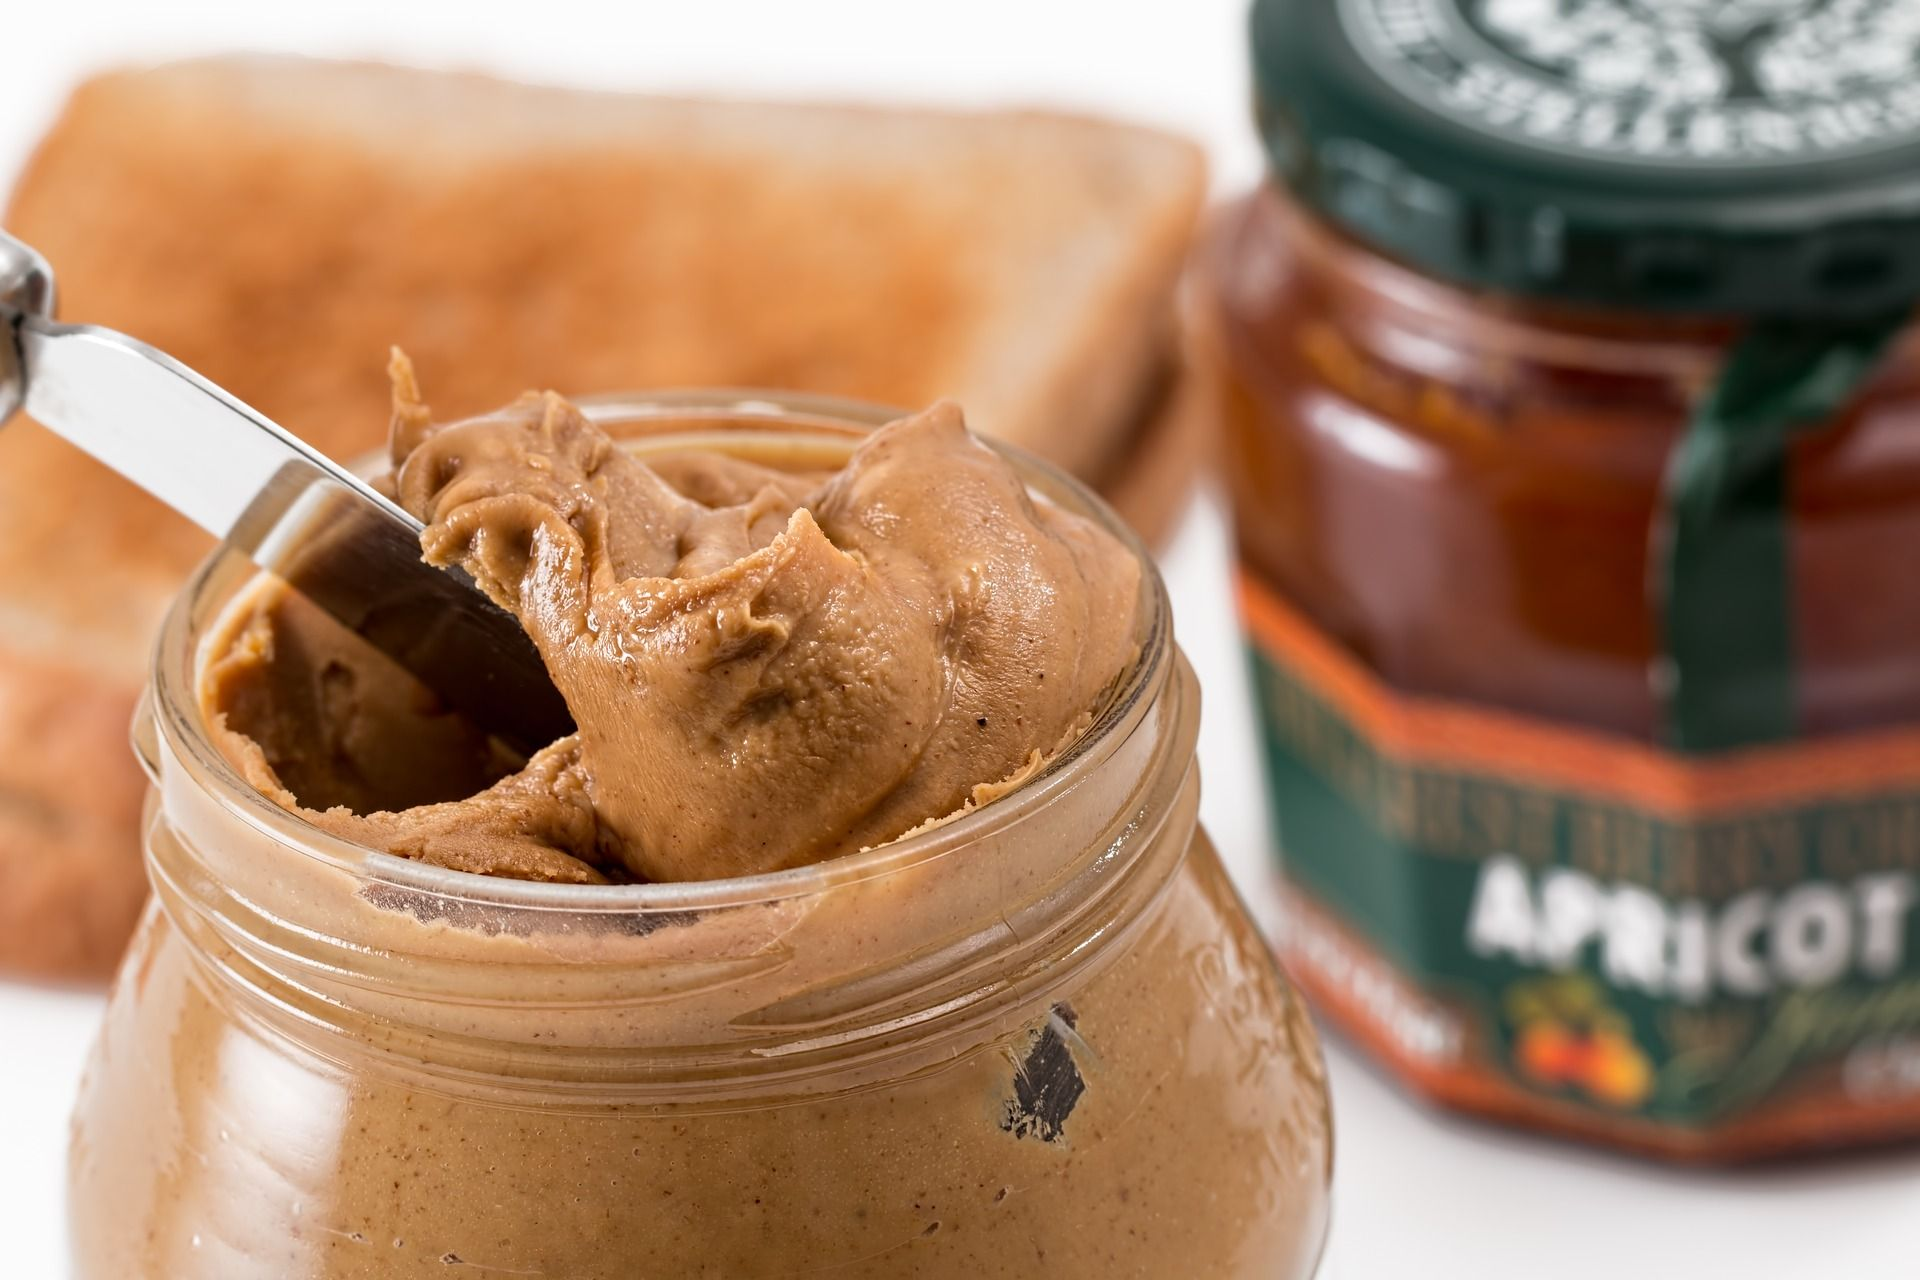 New Stu S Suggest Eating Peanut Butter Is The Key To